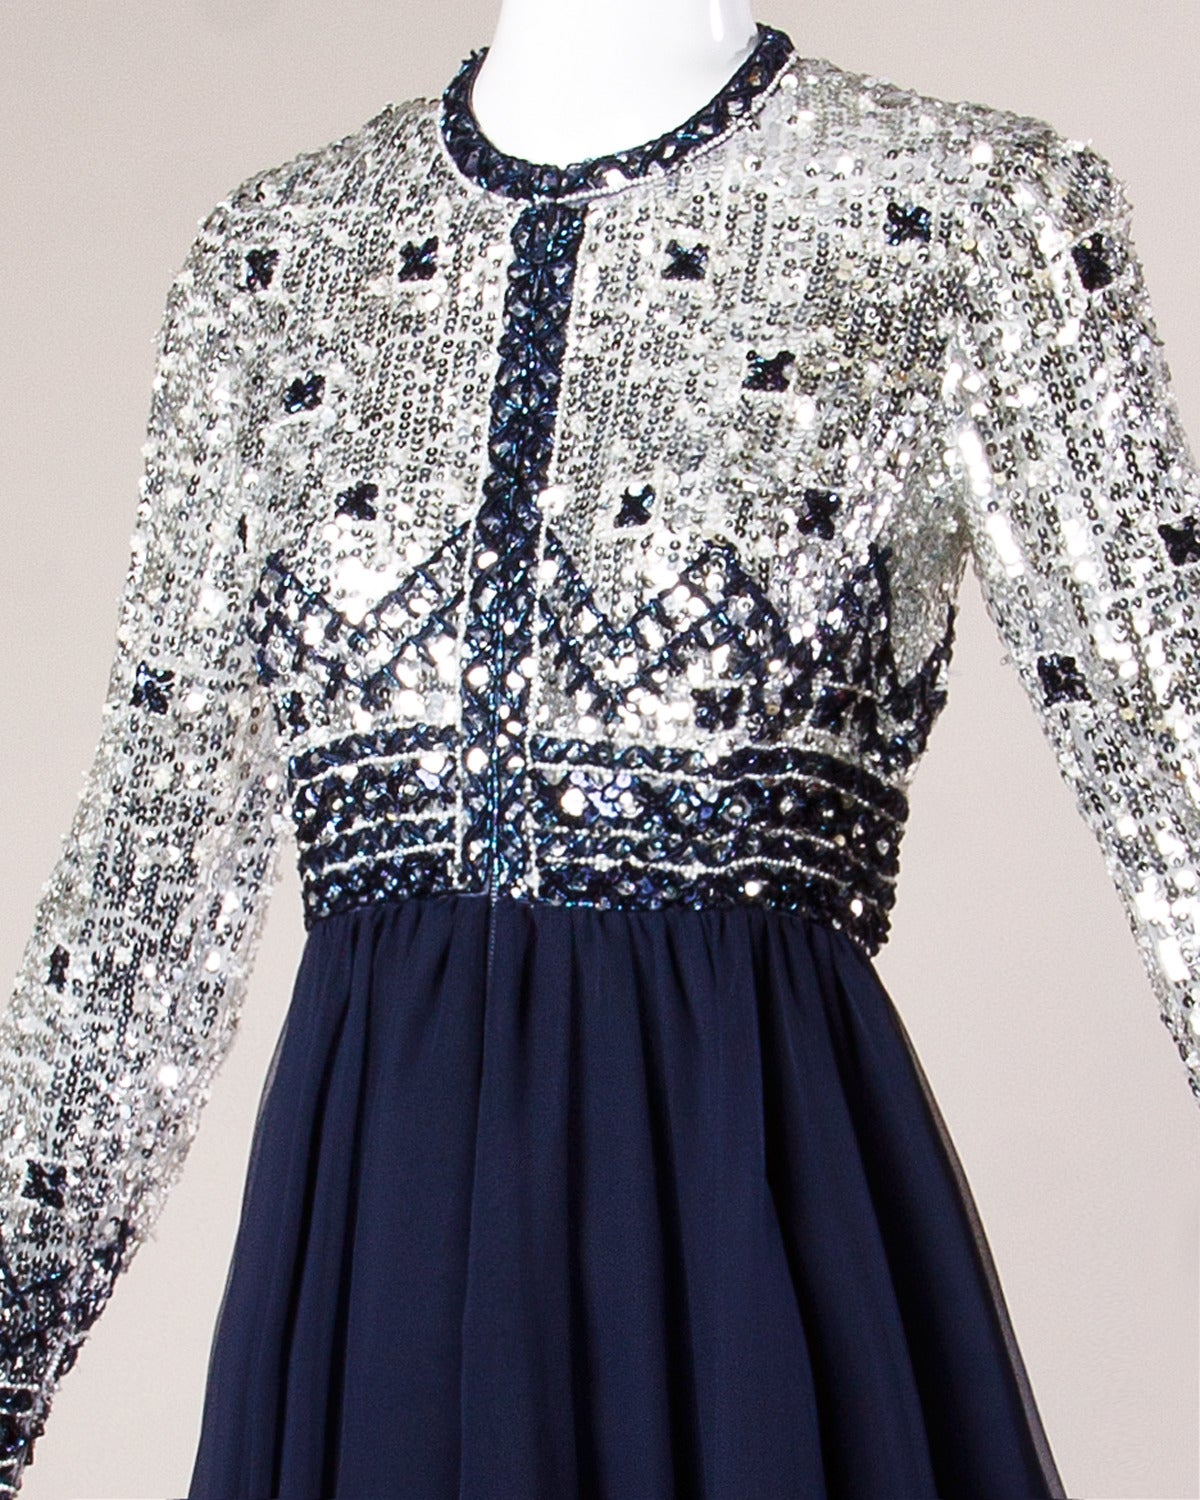 Reduced from $650. Sparkling silver and navy blue sequin and beaded dress with full layered chiffon skirt.